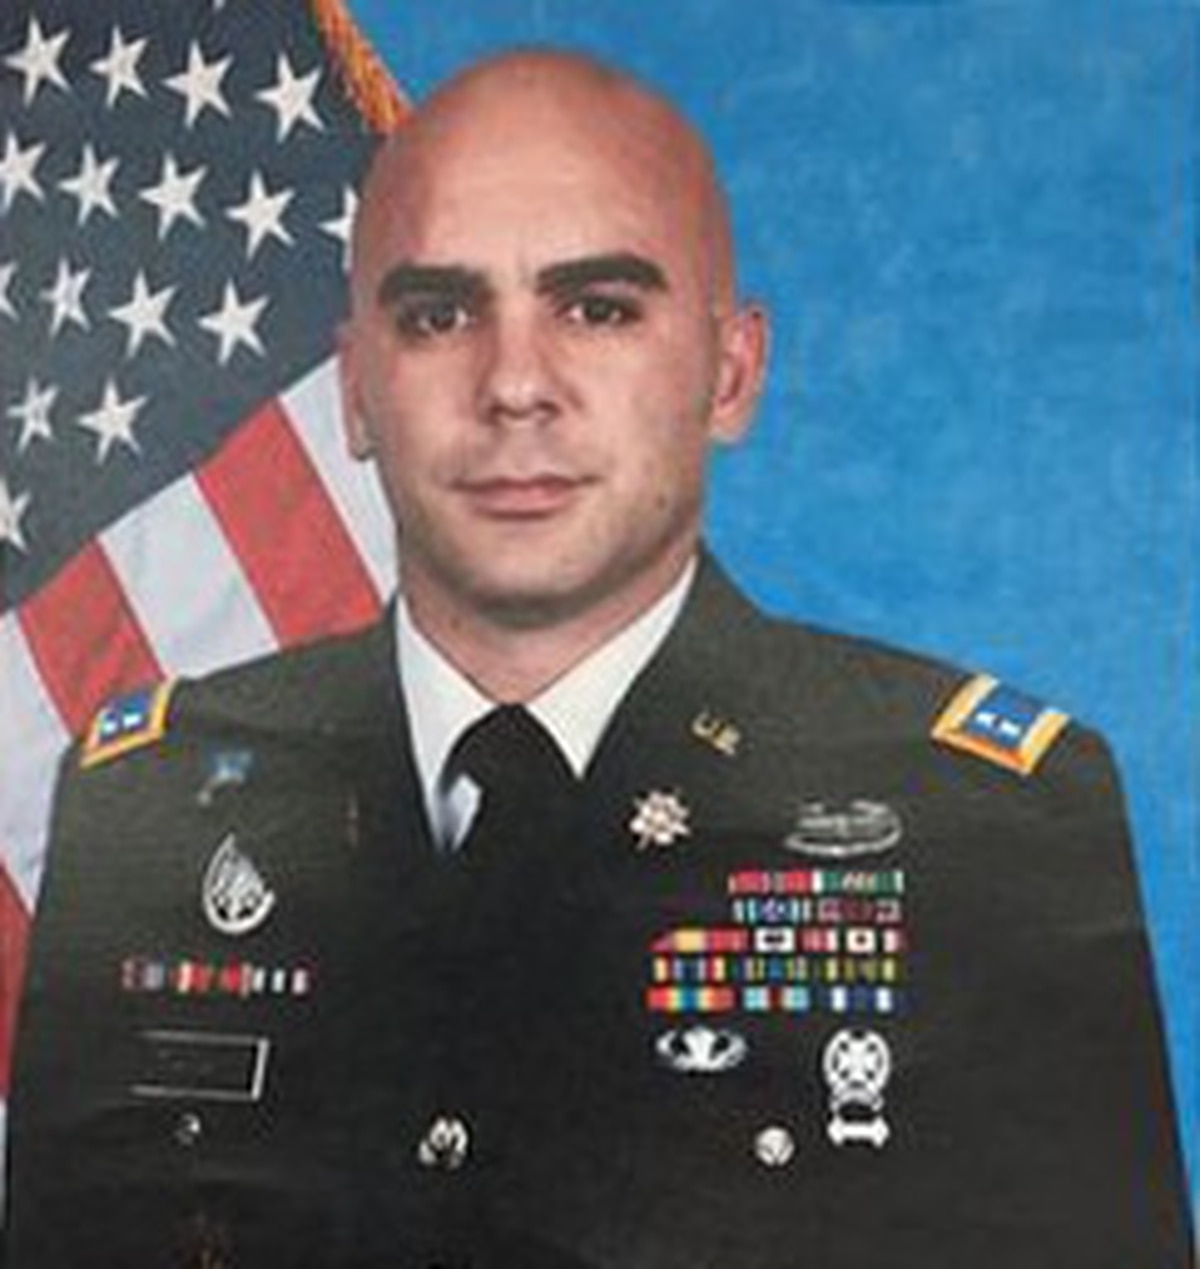 DoD Identifies Soldier Killed In Non-combat Incident In